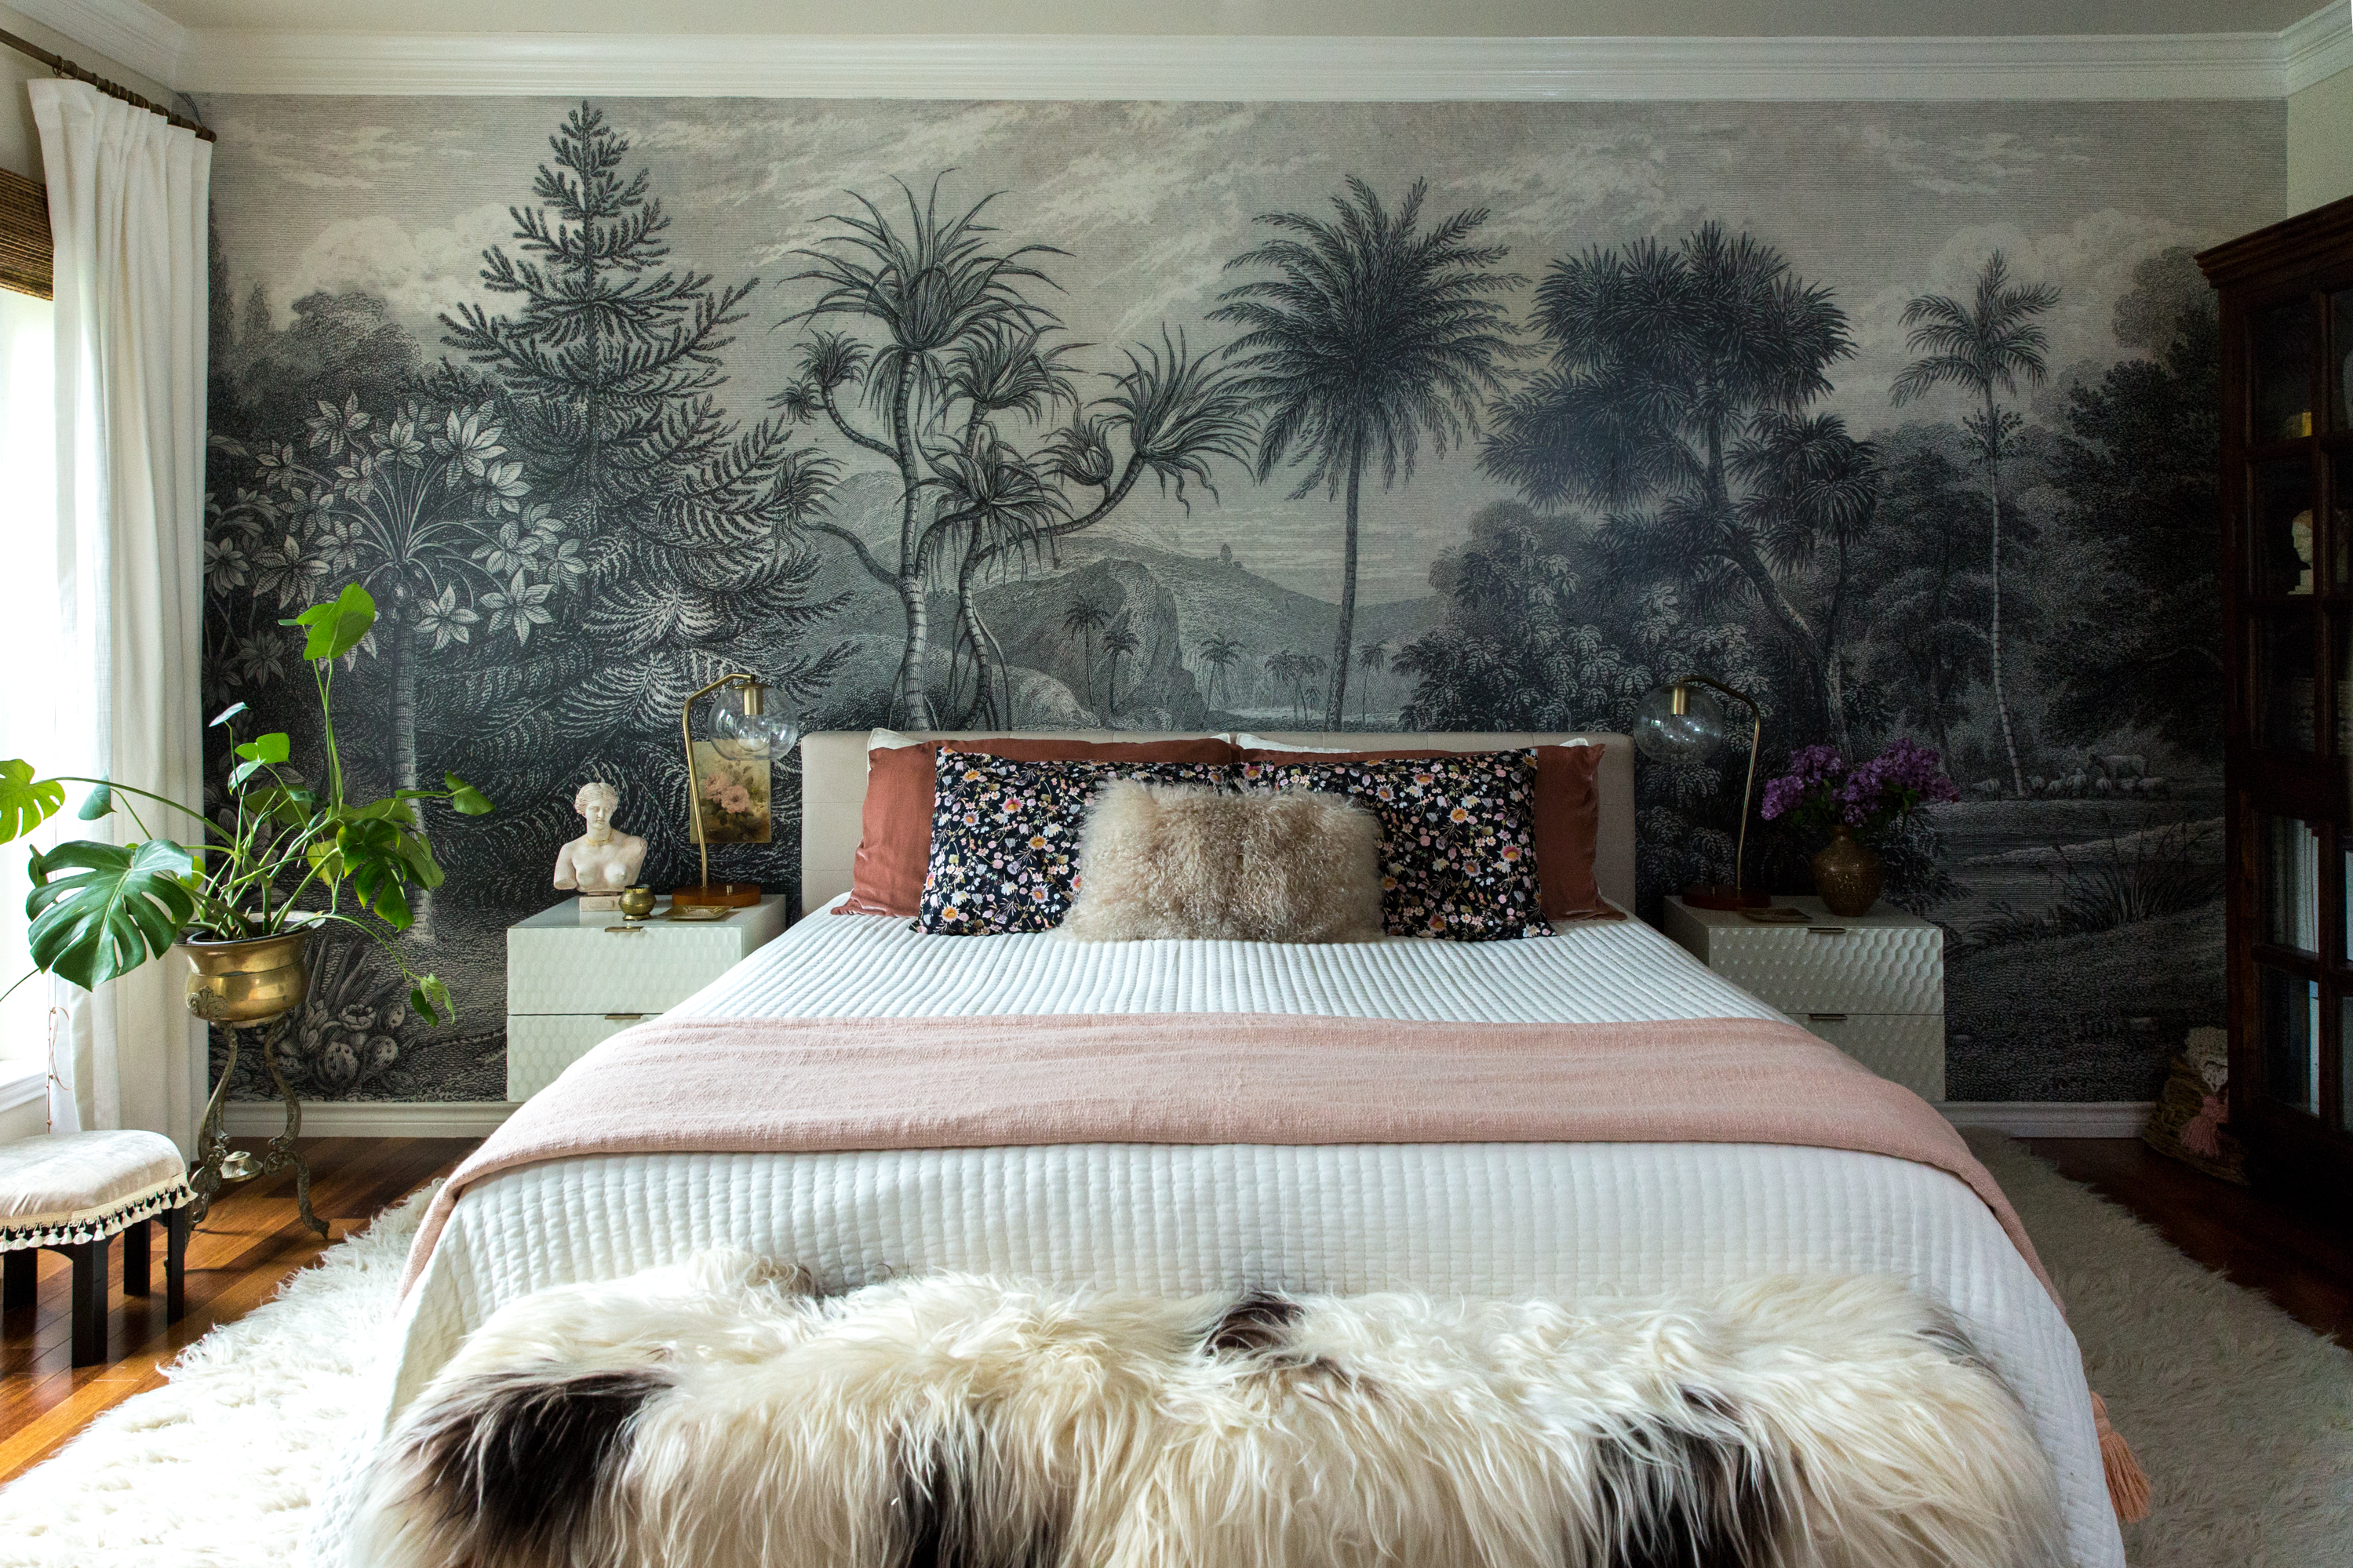 The 8 Biggest Best Bedroom Decor Trends For 2021 According To Designers Apartment Therapy